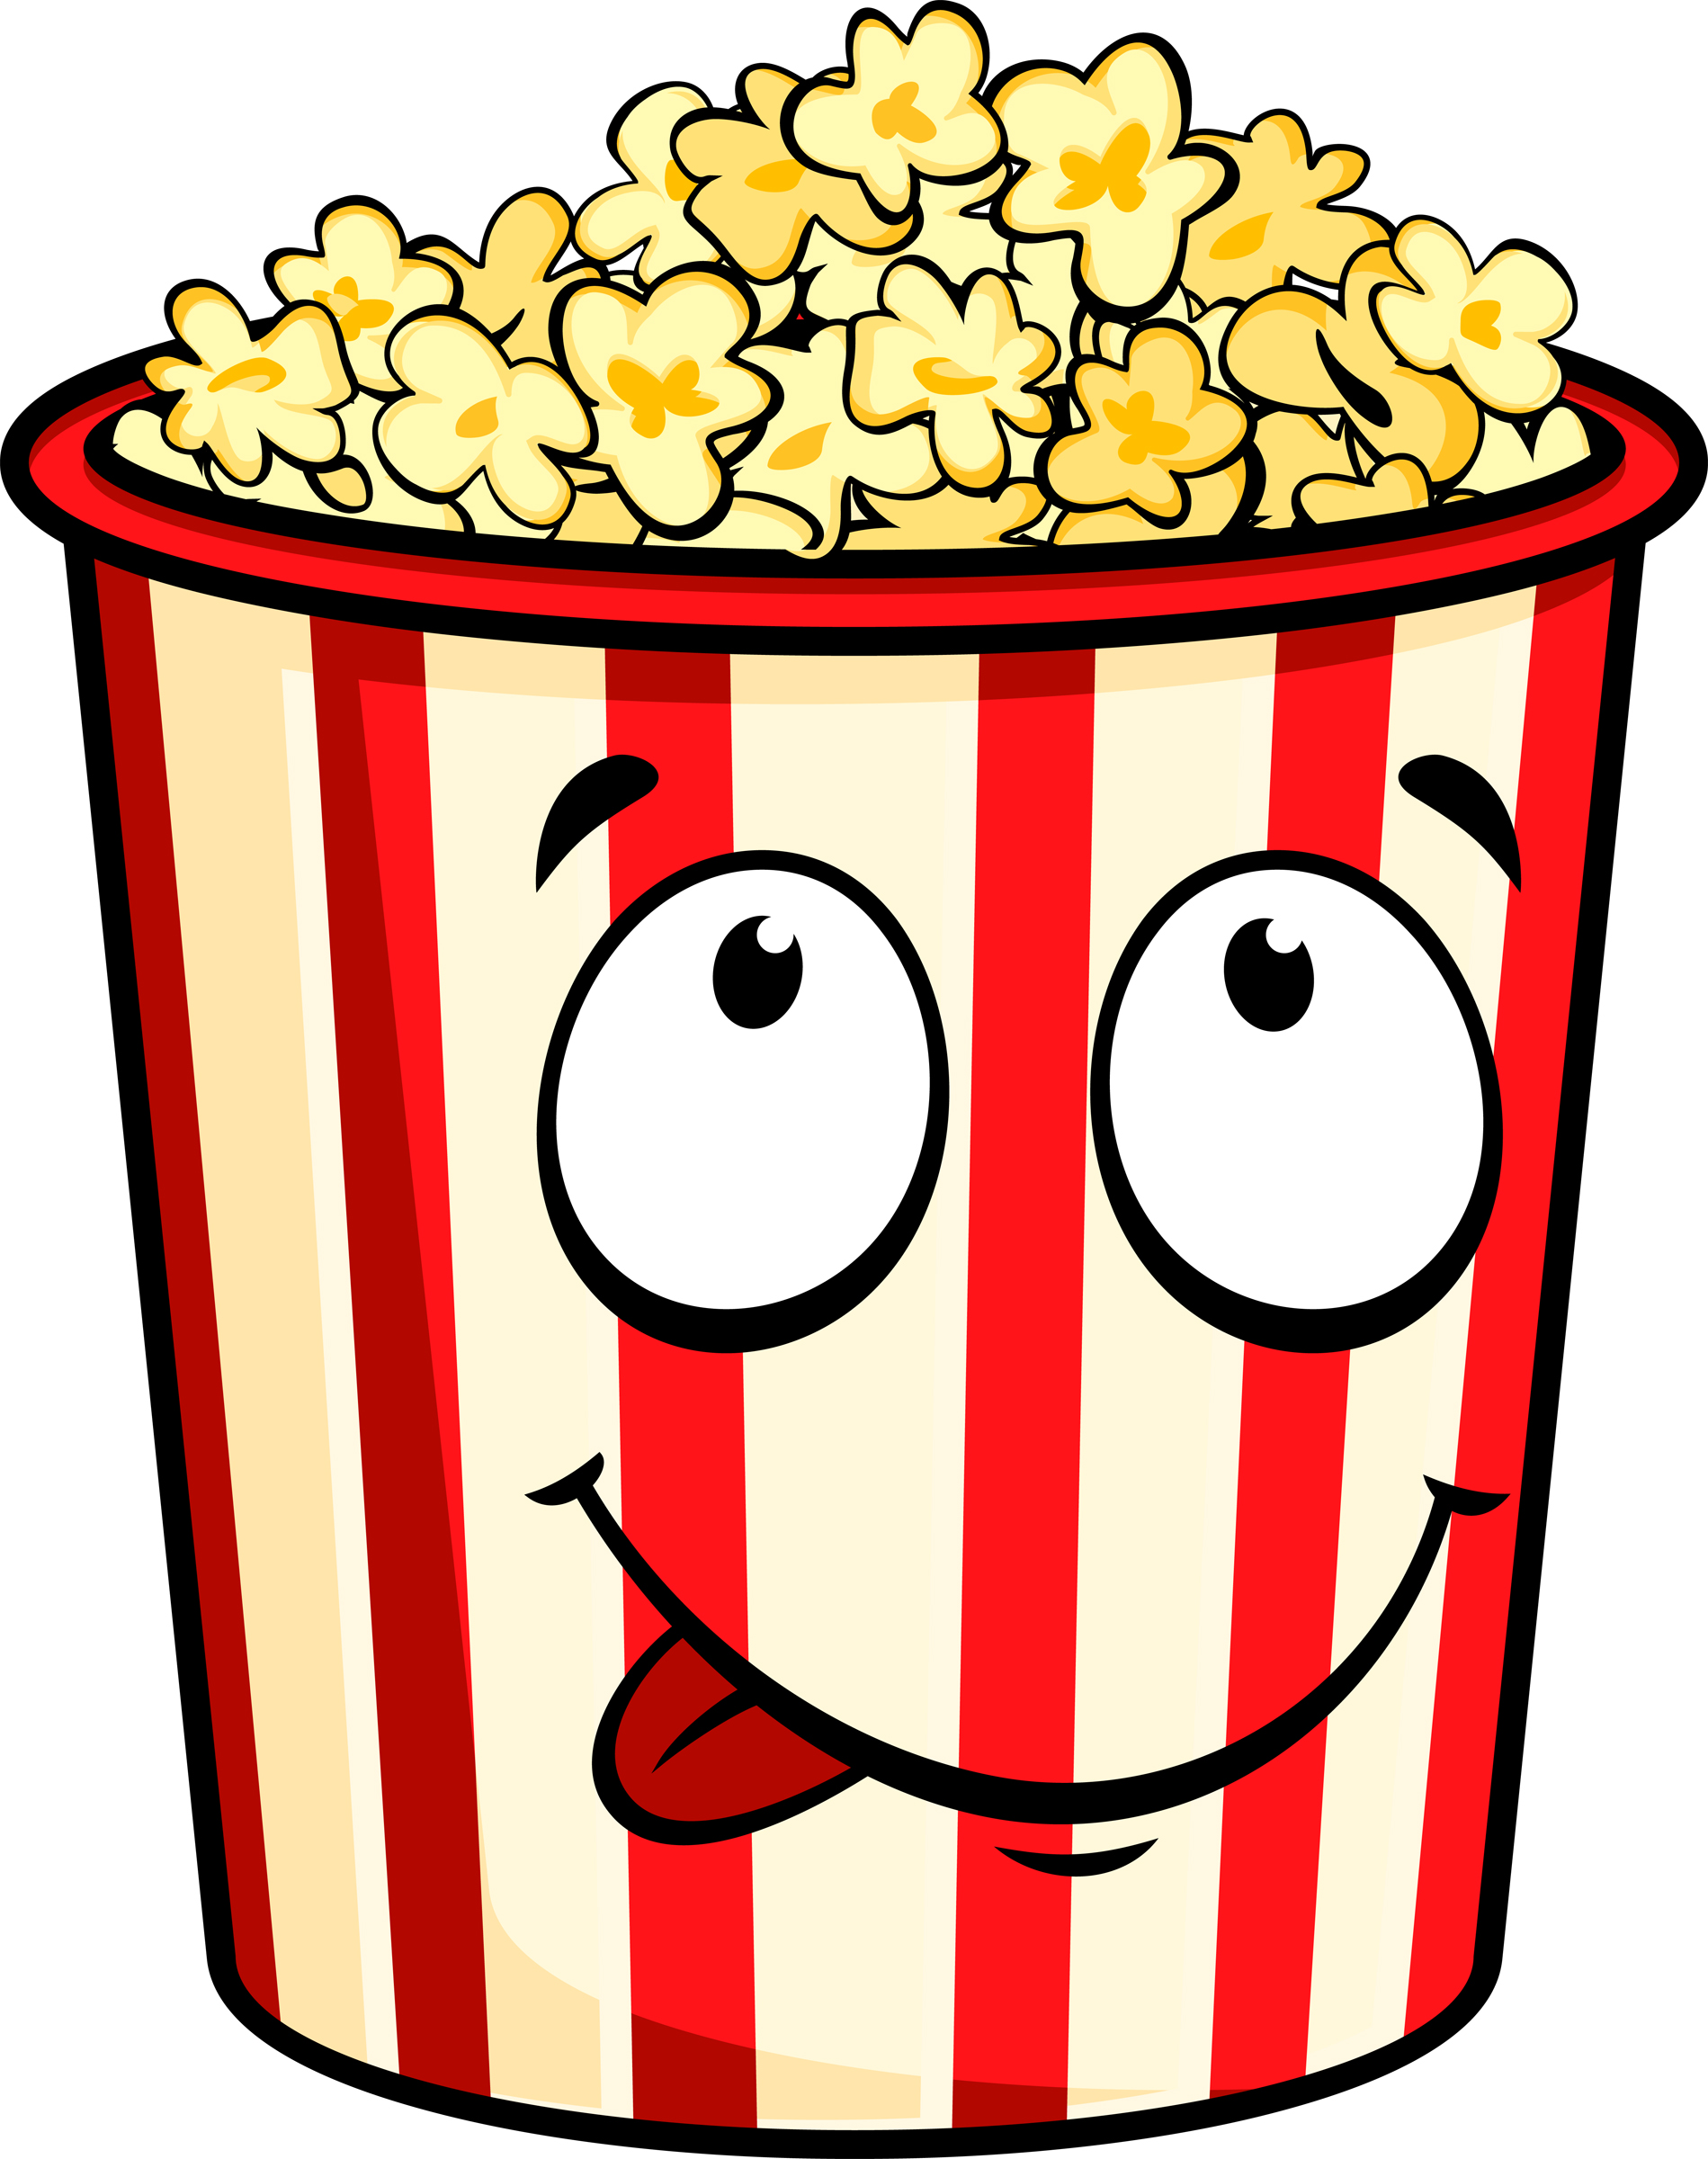 Popcorn Popping Clipart - Clipart Suggest Popping Popcorn Clip Art